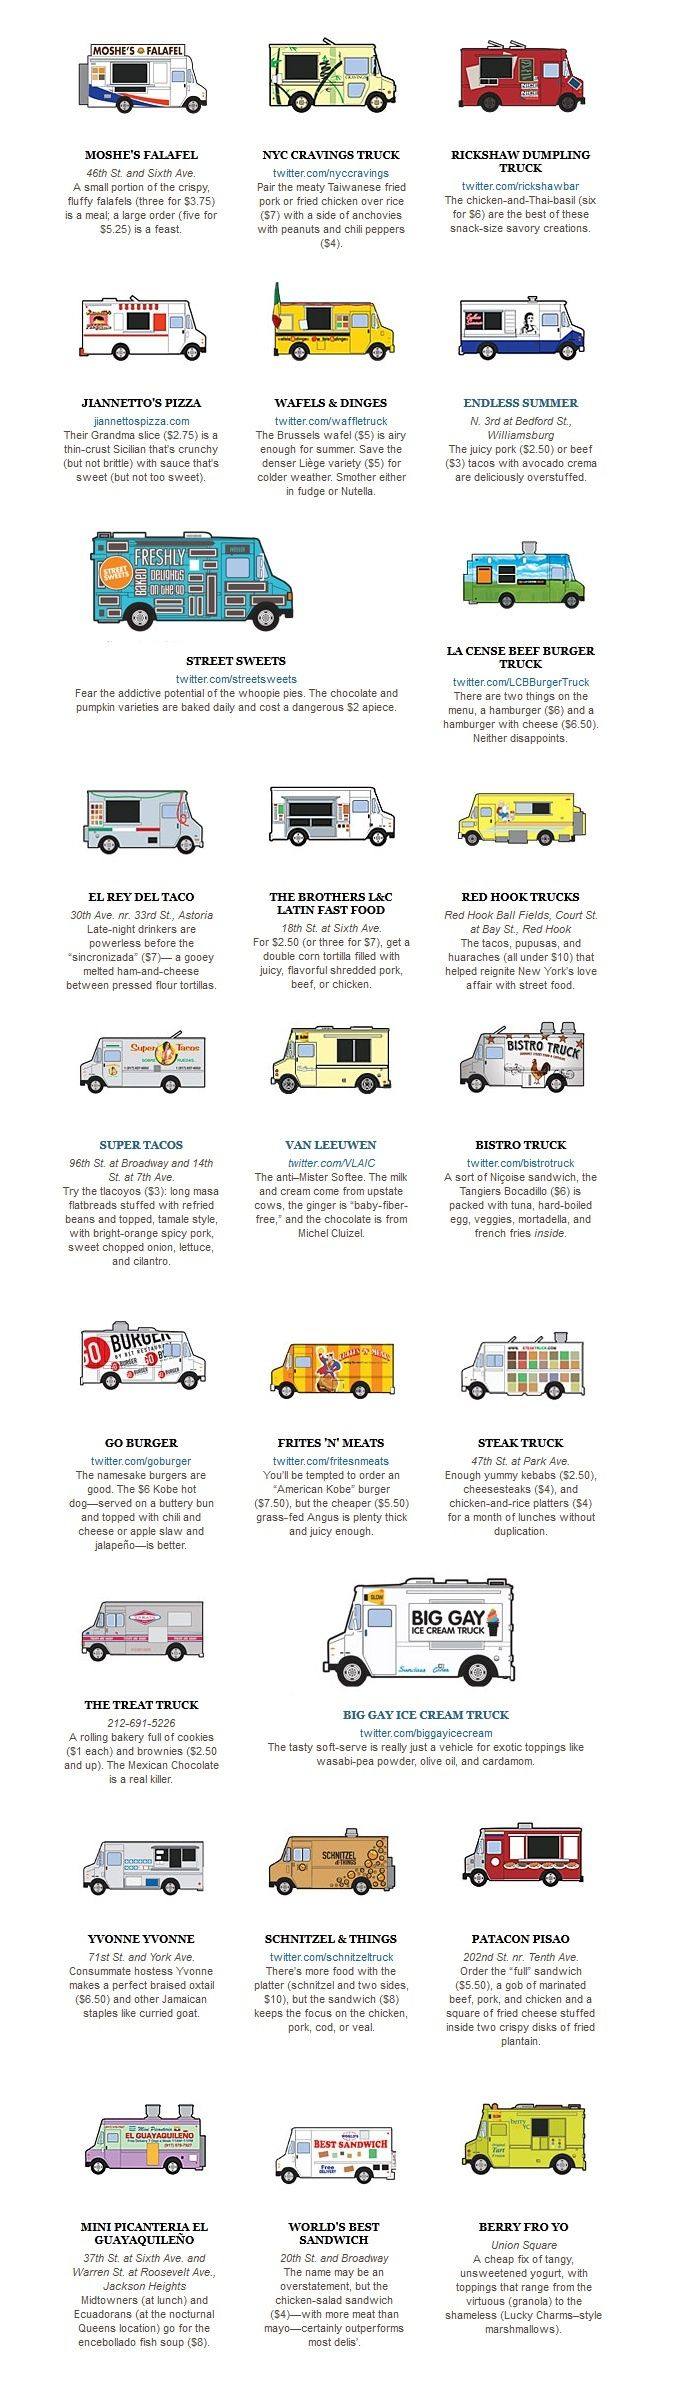 Top 25 Food Trucks in NYC: